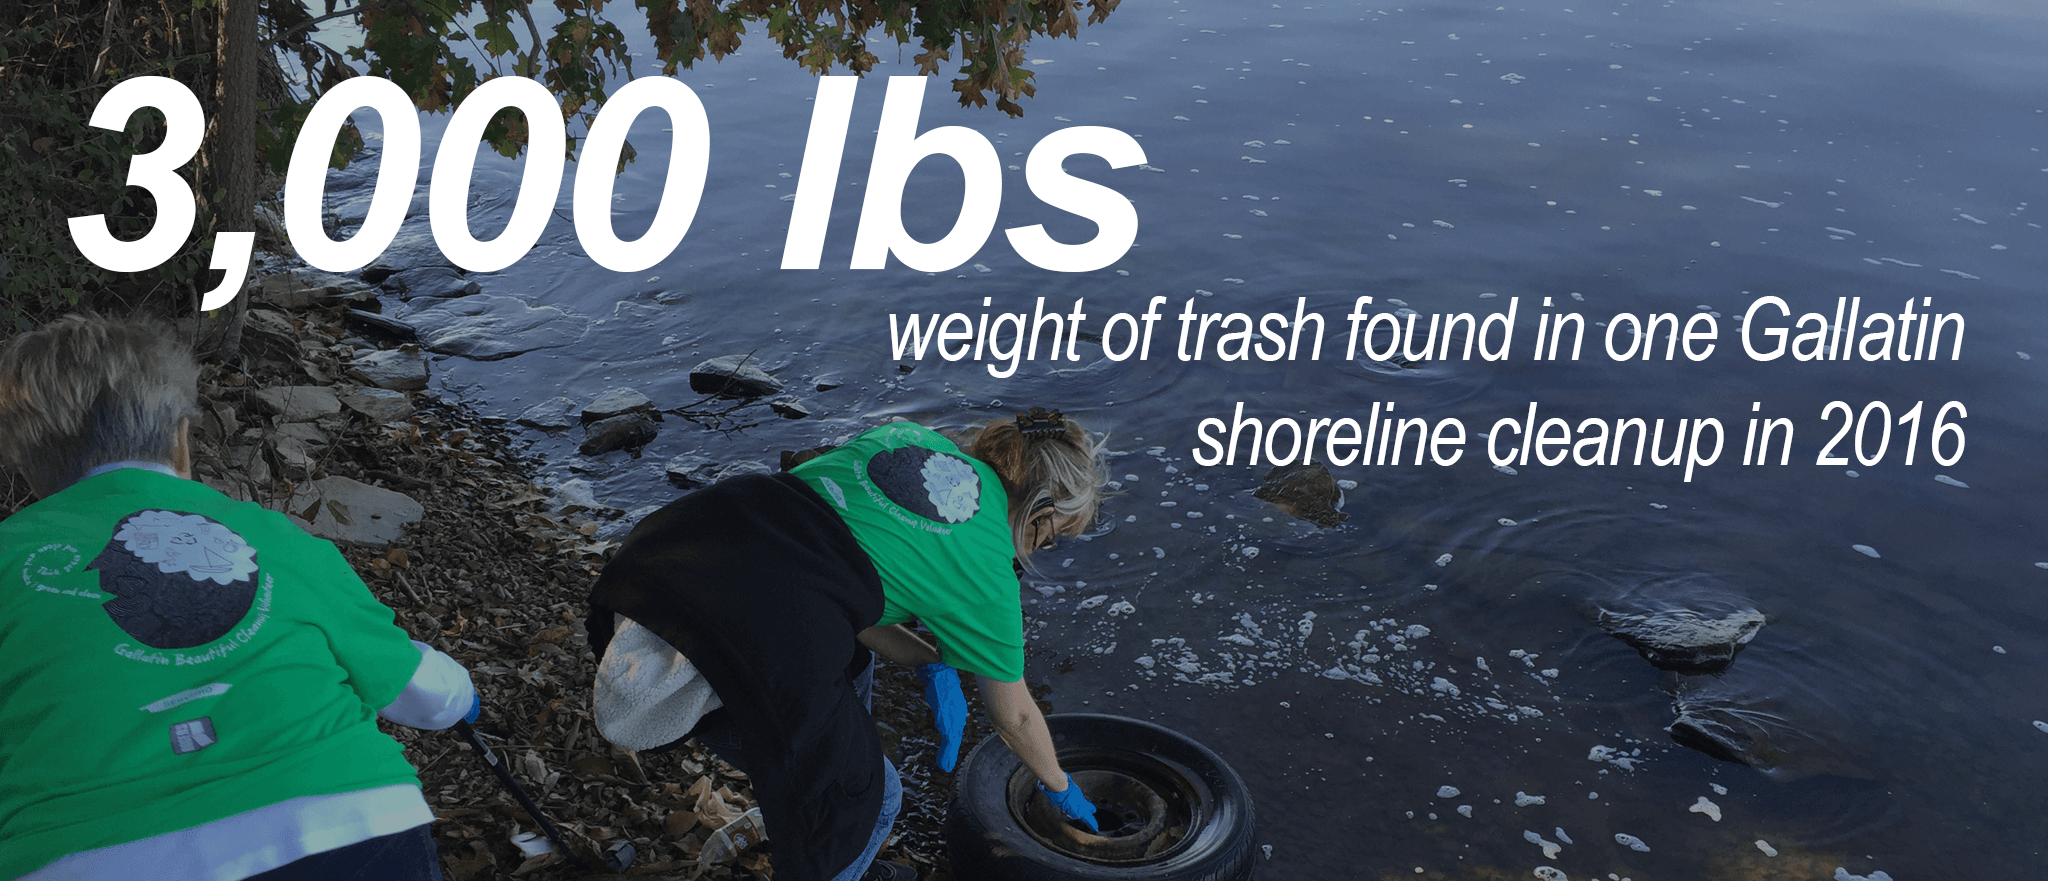 3,000 Pounds - The Weight of Trash found in 1 Gallatin Shoreline Cleanup in 2016